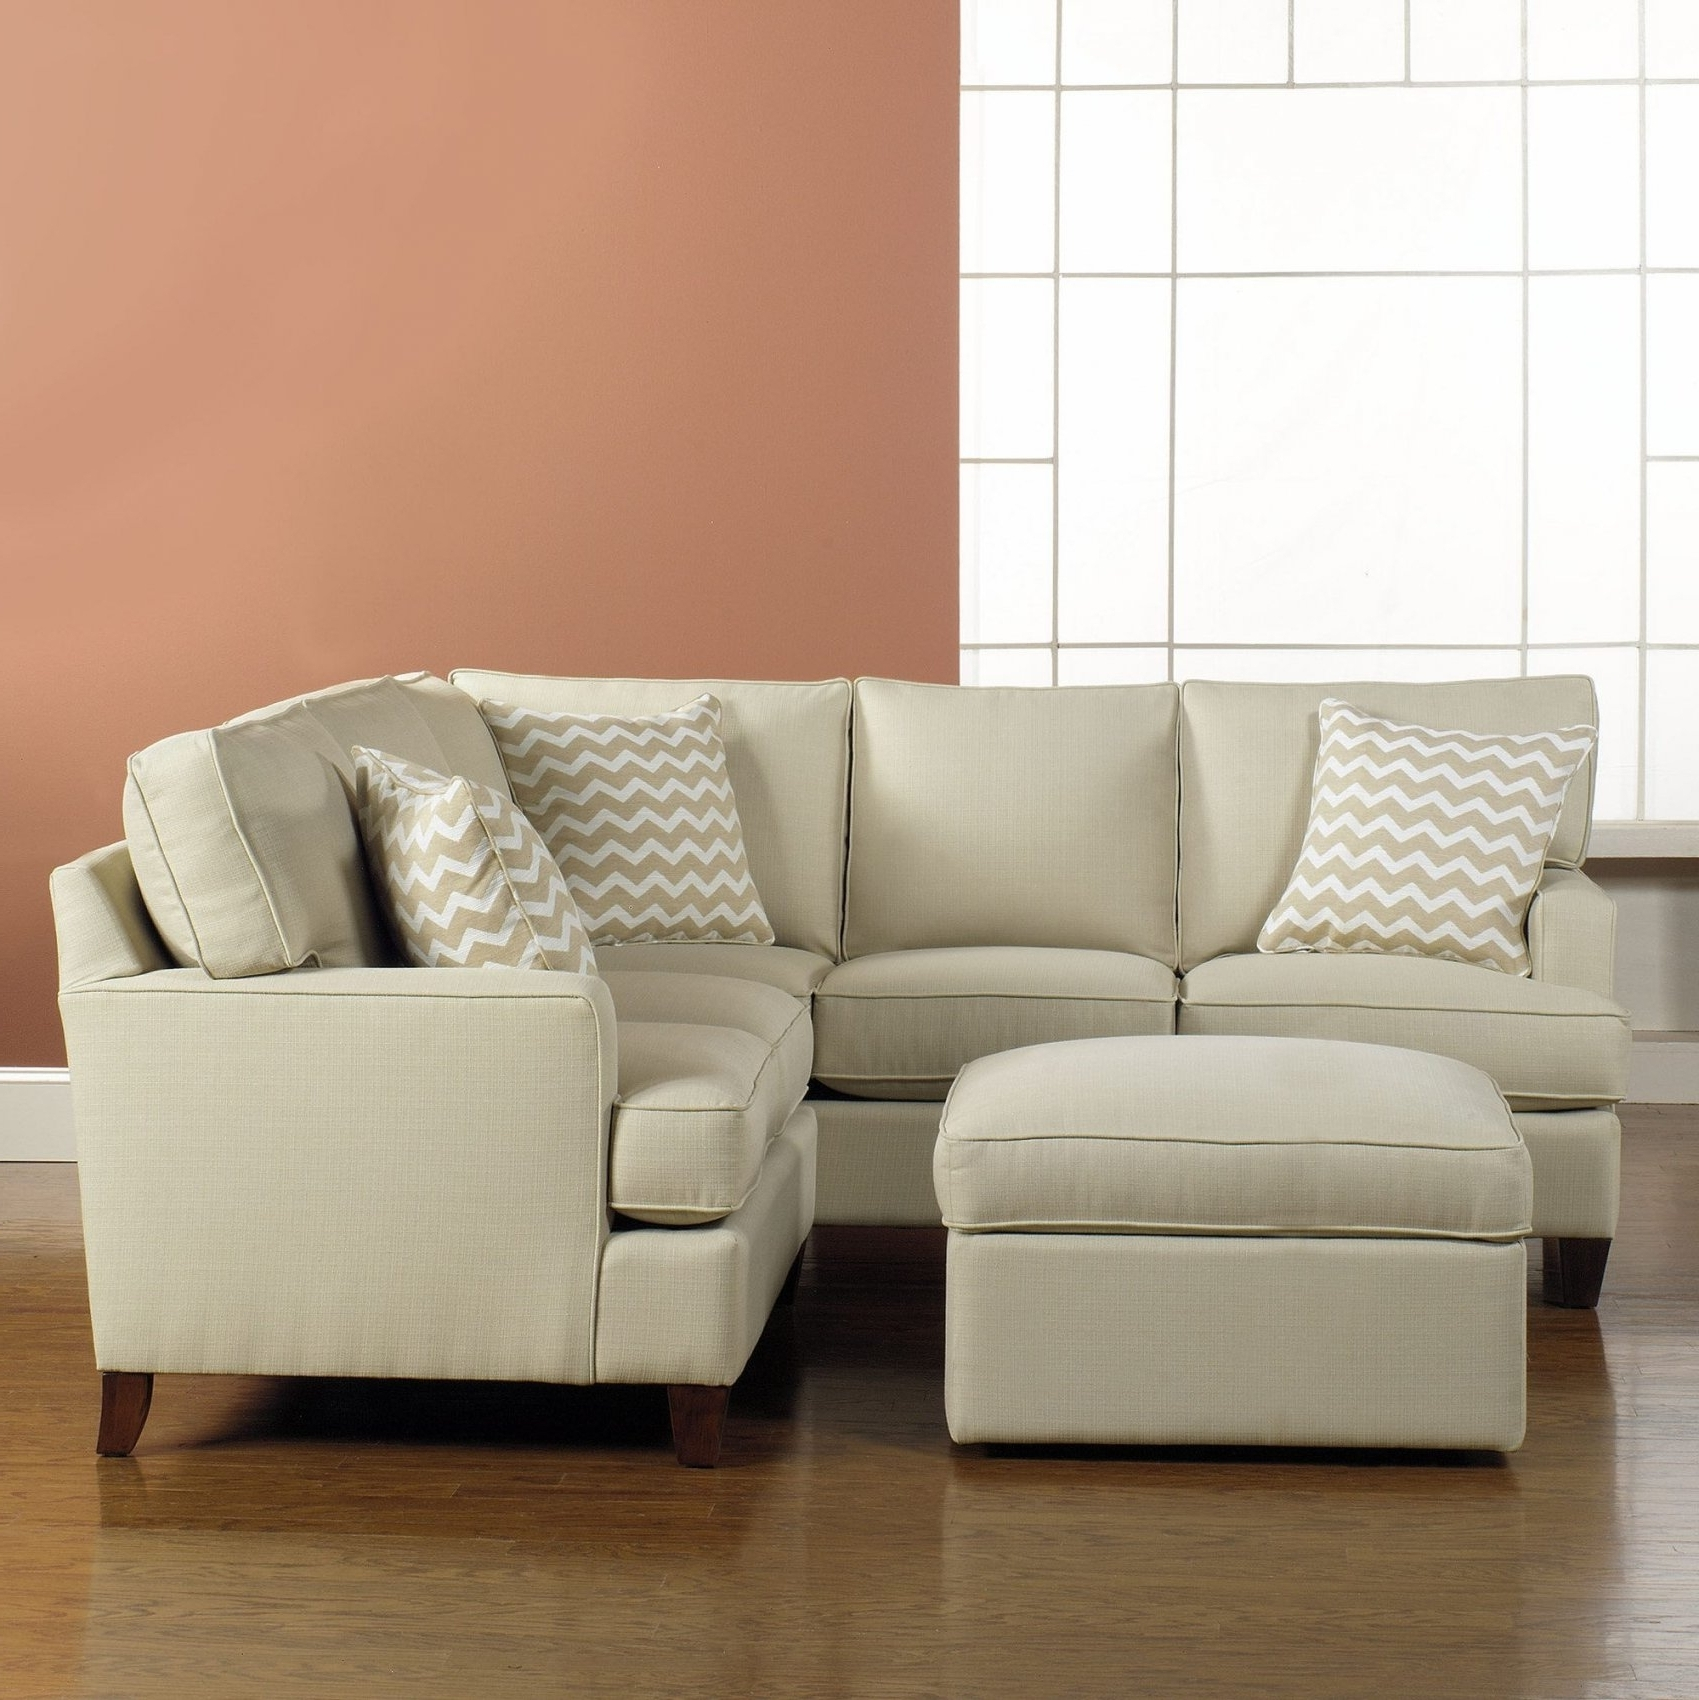 Preferred Sectional Sofa For Small Spaces 94 In Living Room Sofa With With Small Spaces Sectional Sofas (View 4 of 15)